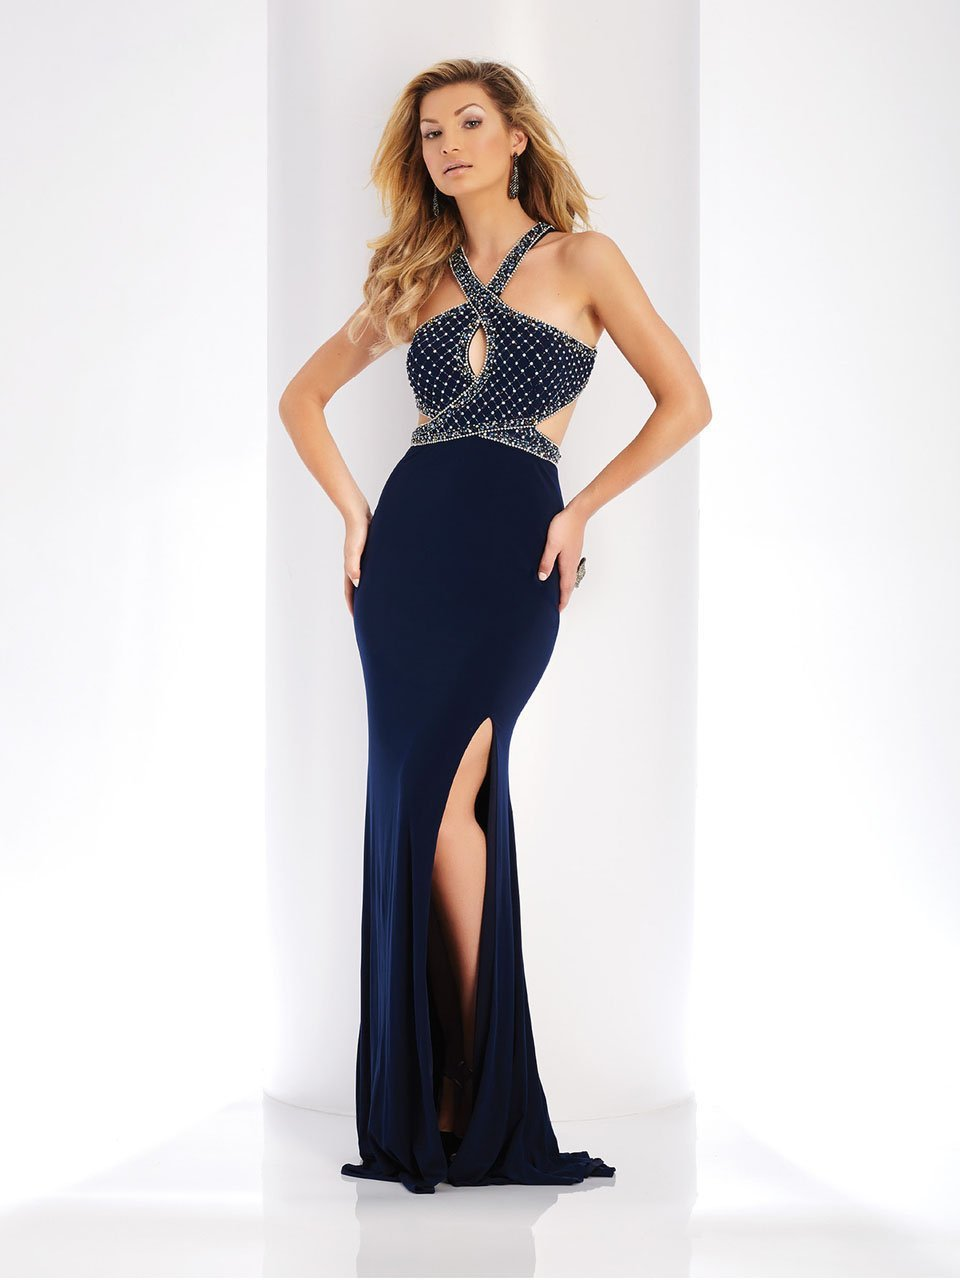 Clarisse - 3512 Embellished Halter Cutout Sheath Dress in Blue